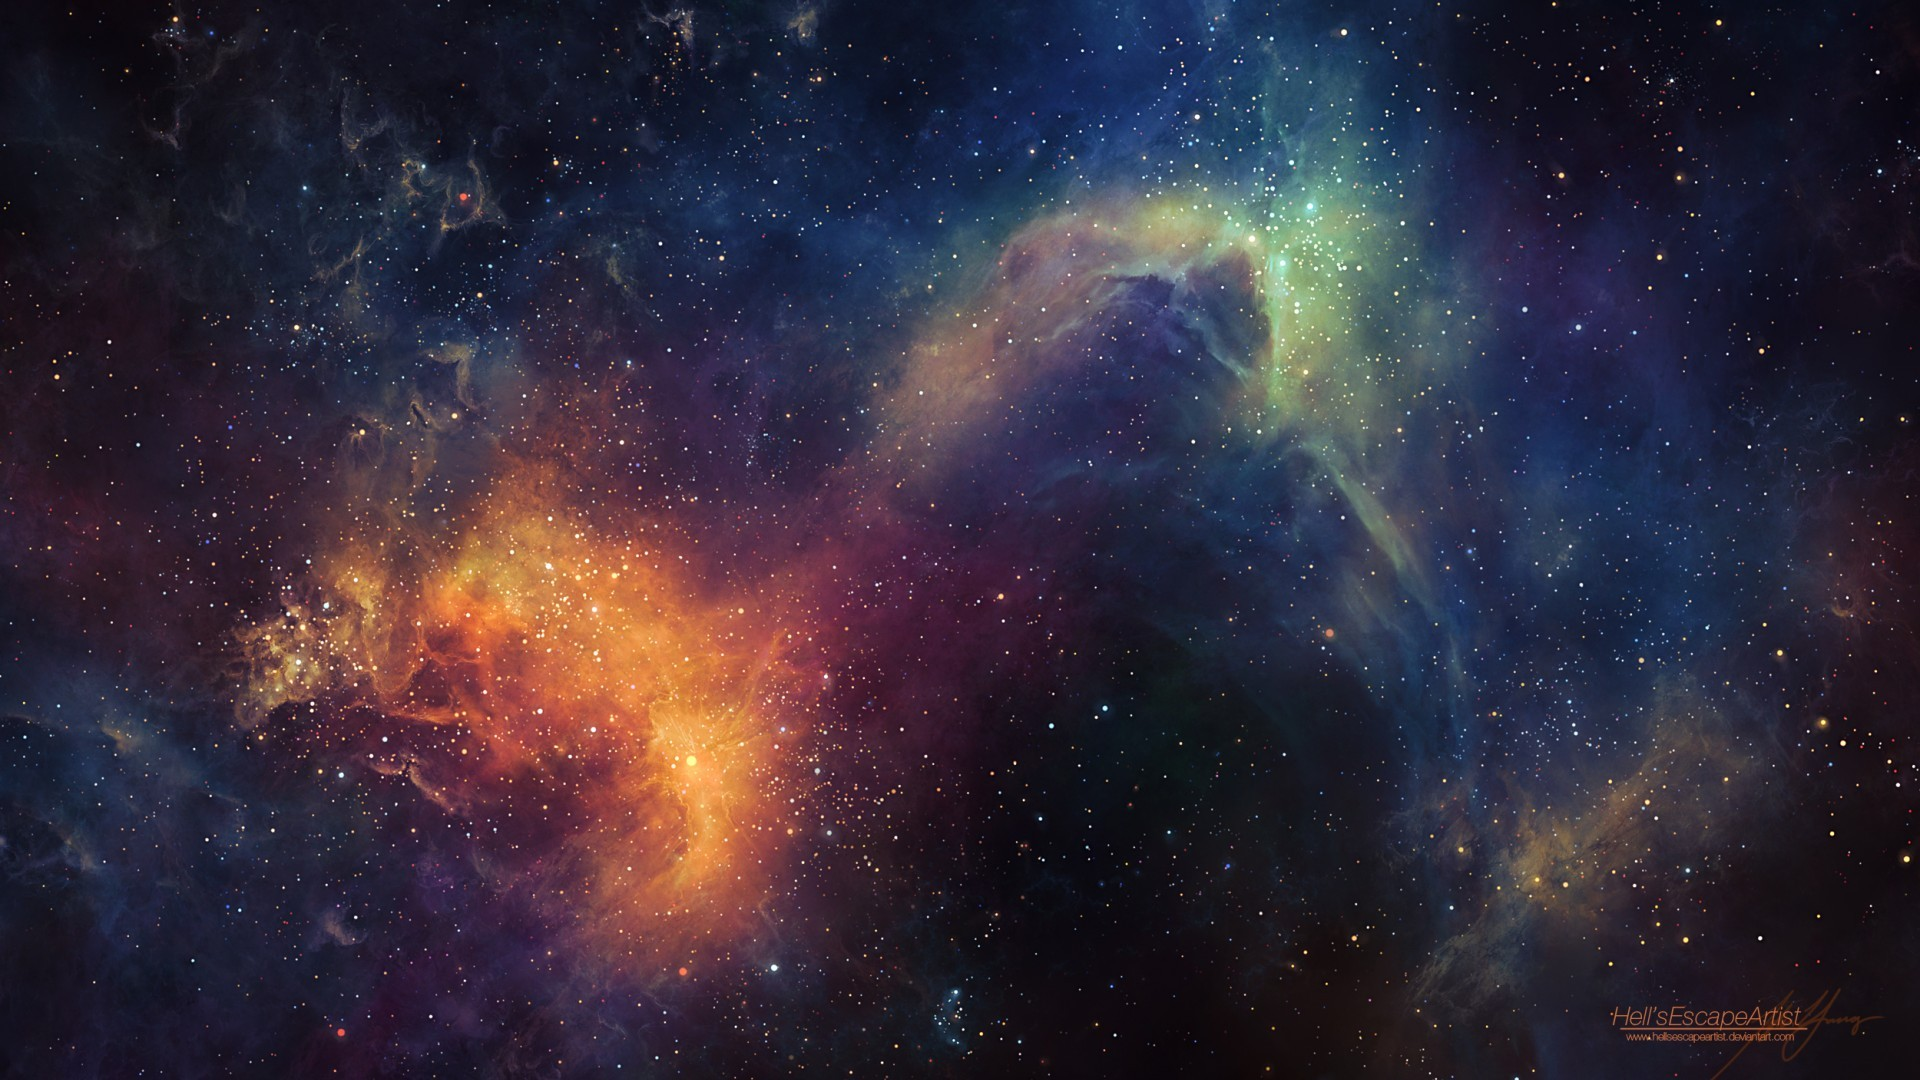 General 1920x1080 space nebula space art TylerCreatesWorlds digital art artwork stars space clouds